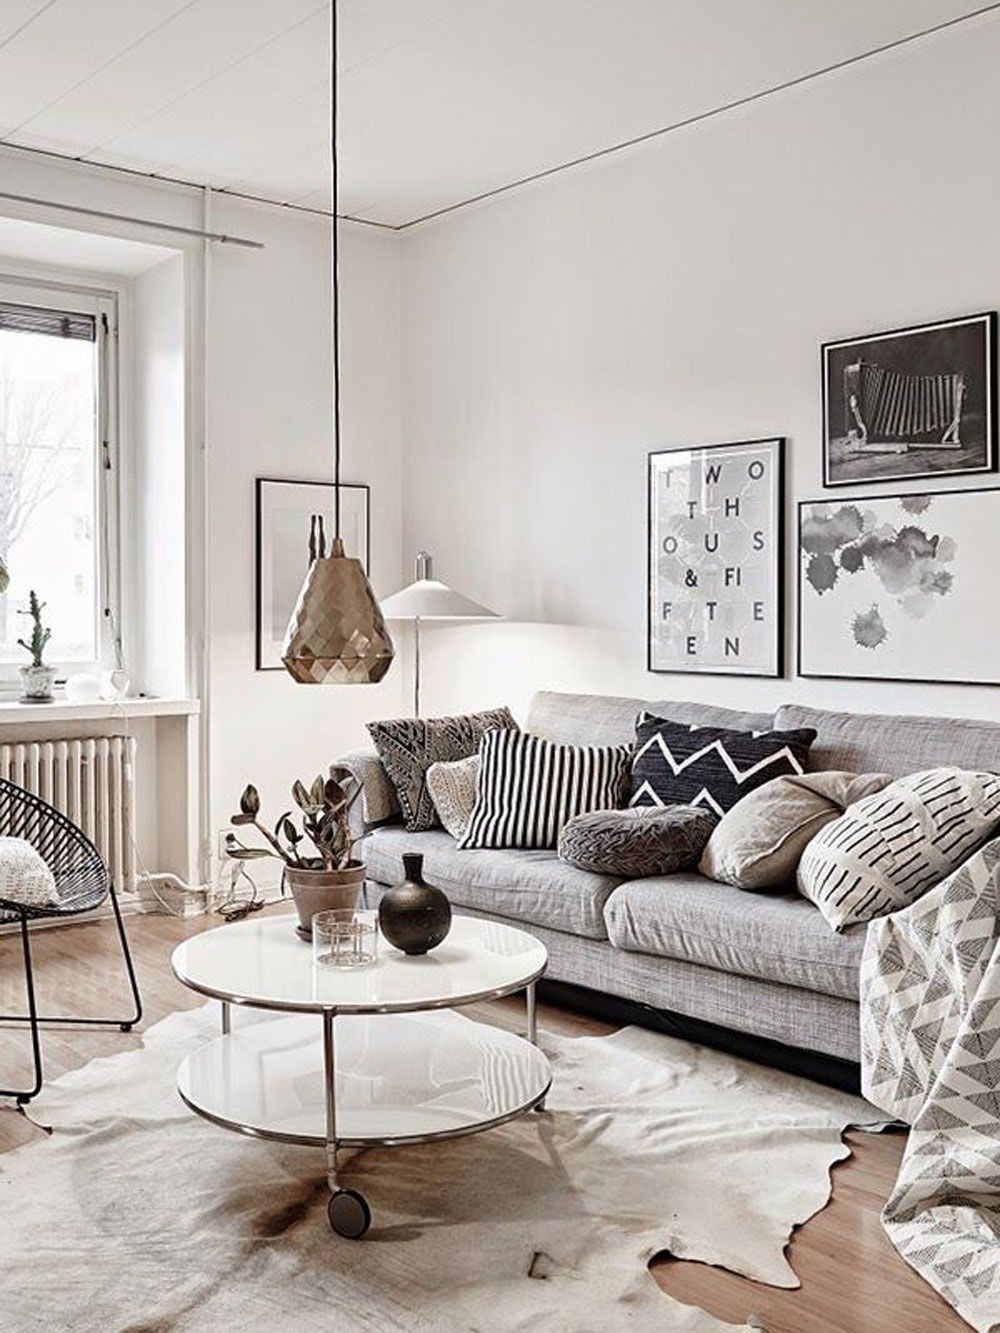 Grey Couch Decor Grey Couch Decor Ideas Grey Couch Decor Living Room Scandinavische Woonkamers Kamer Decoratie Interieur Woonkamer